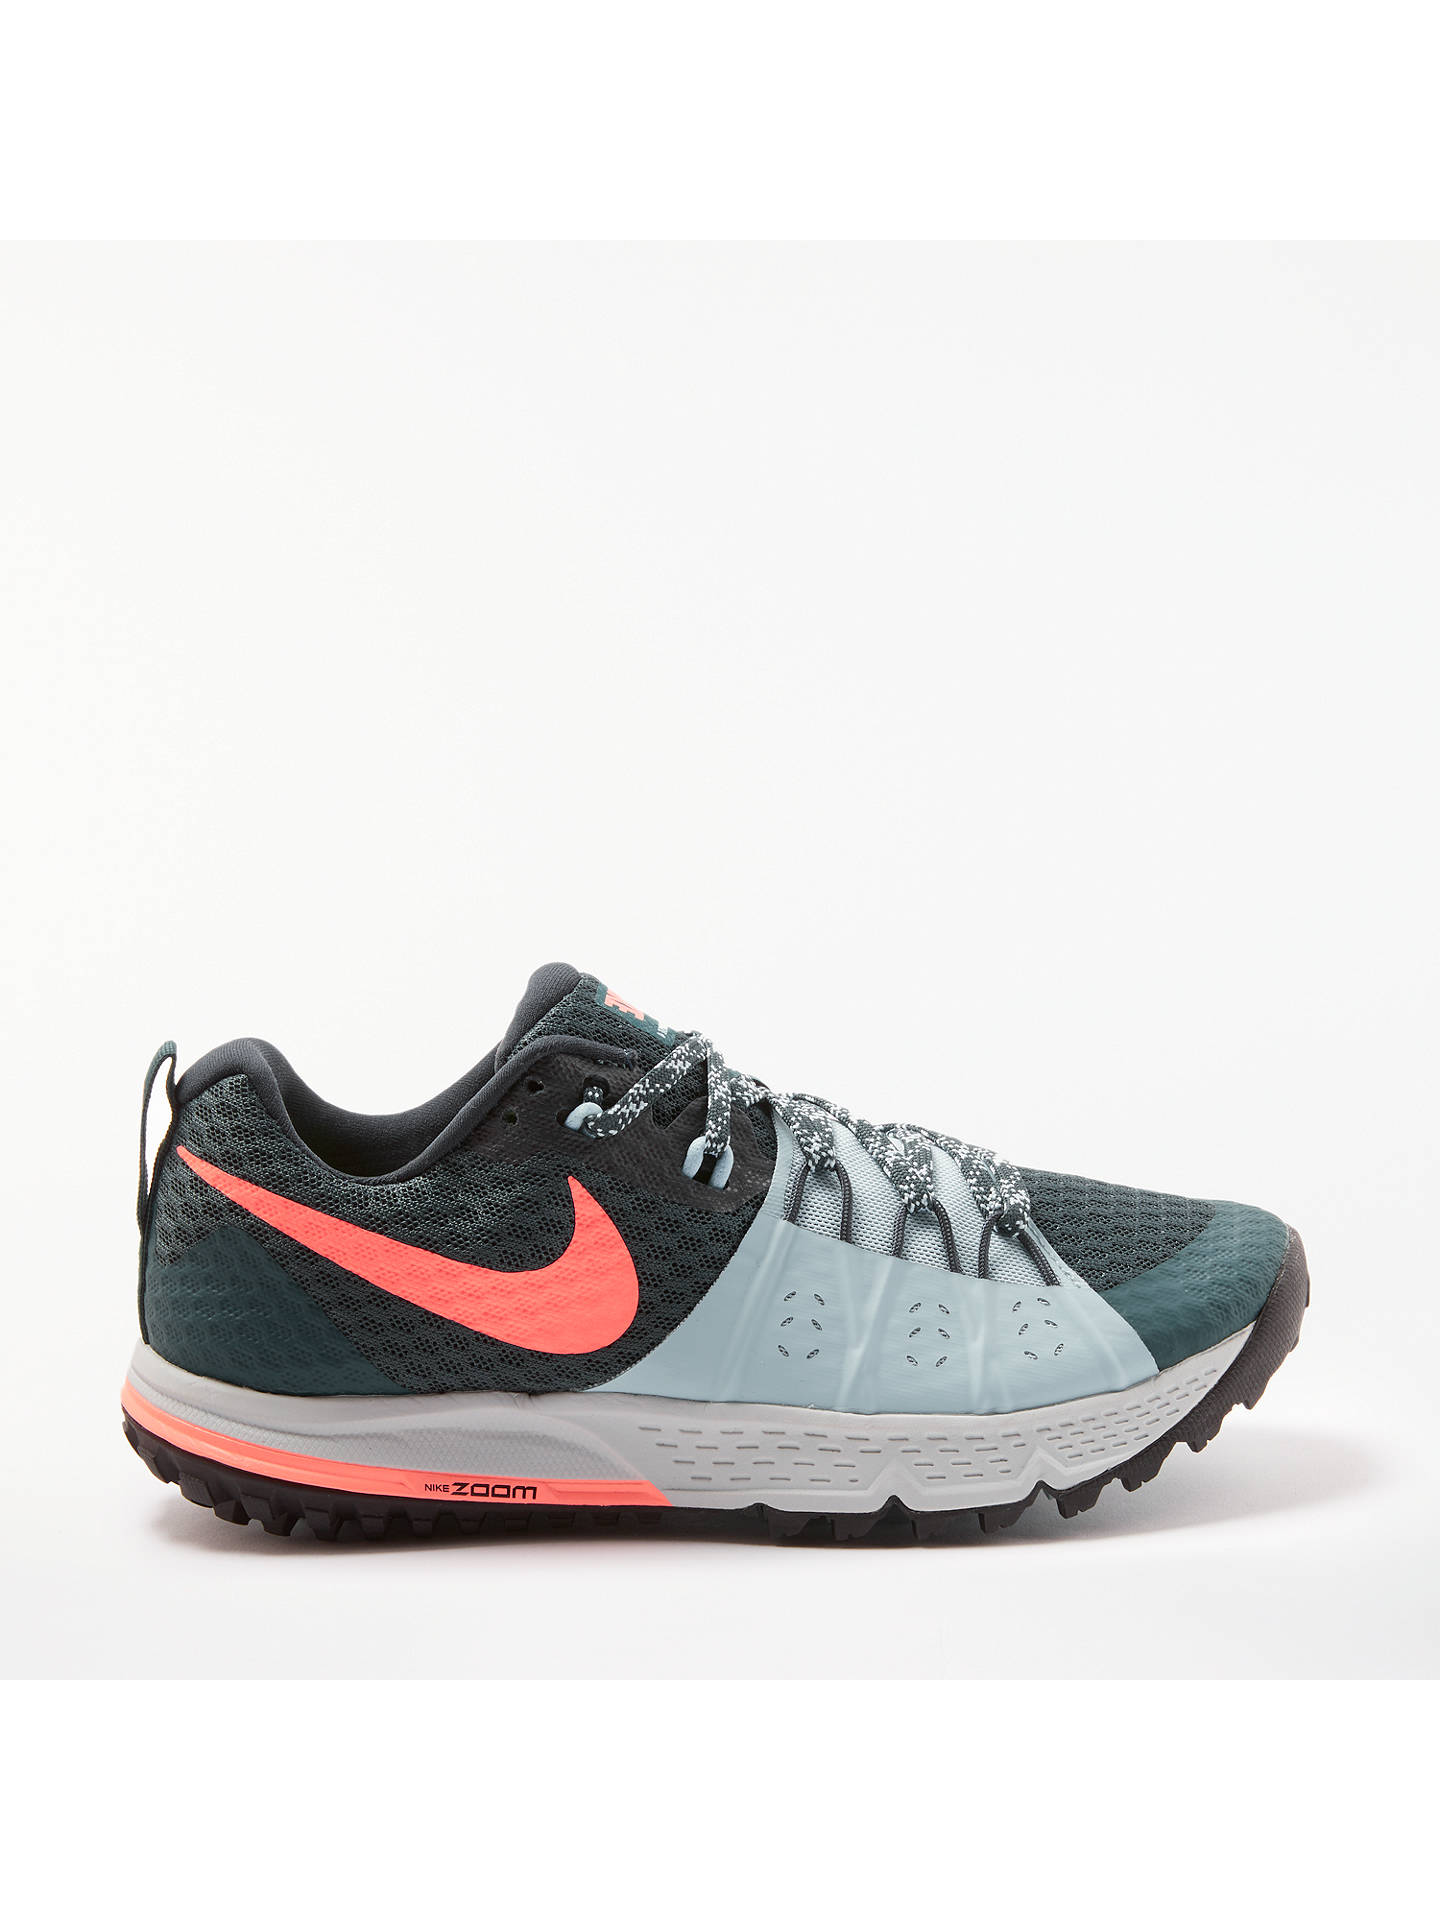 33271861678 Buy Nike Air Zoom Wildhorse 4 Women s Running Shoes